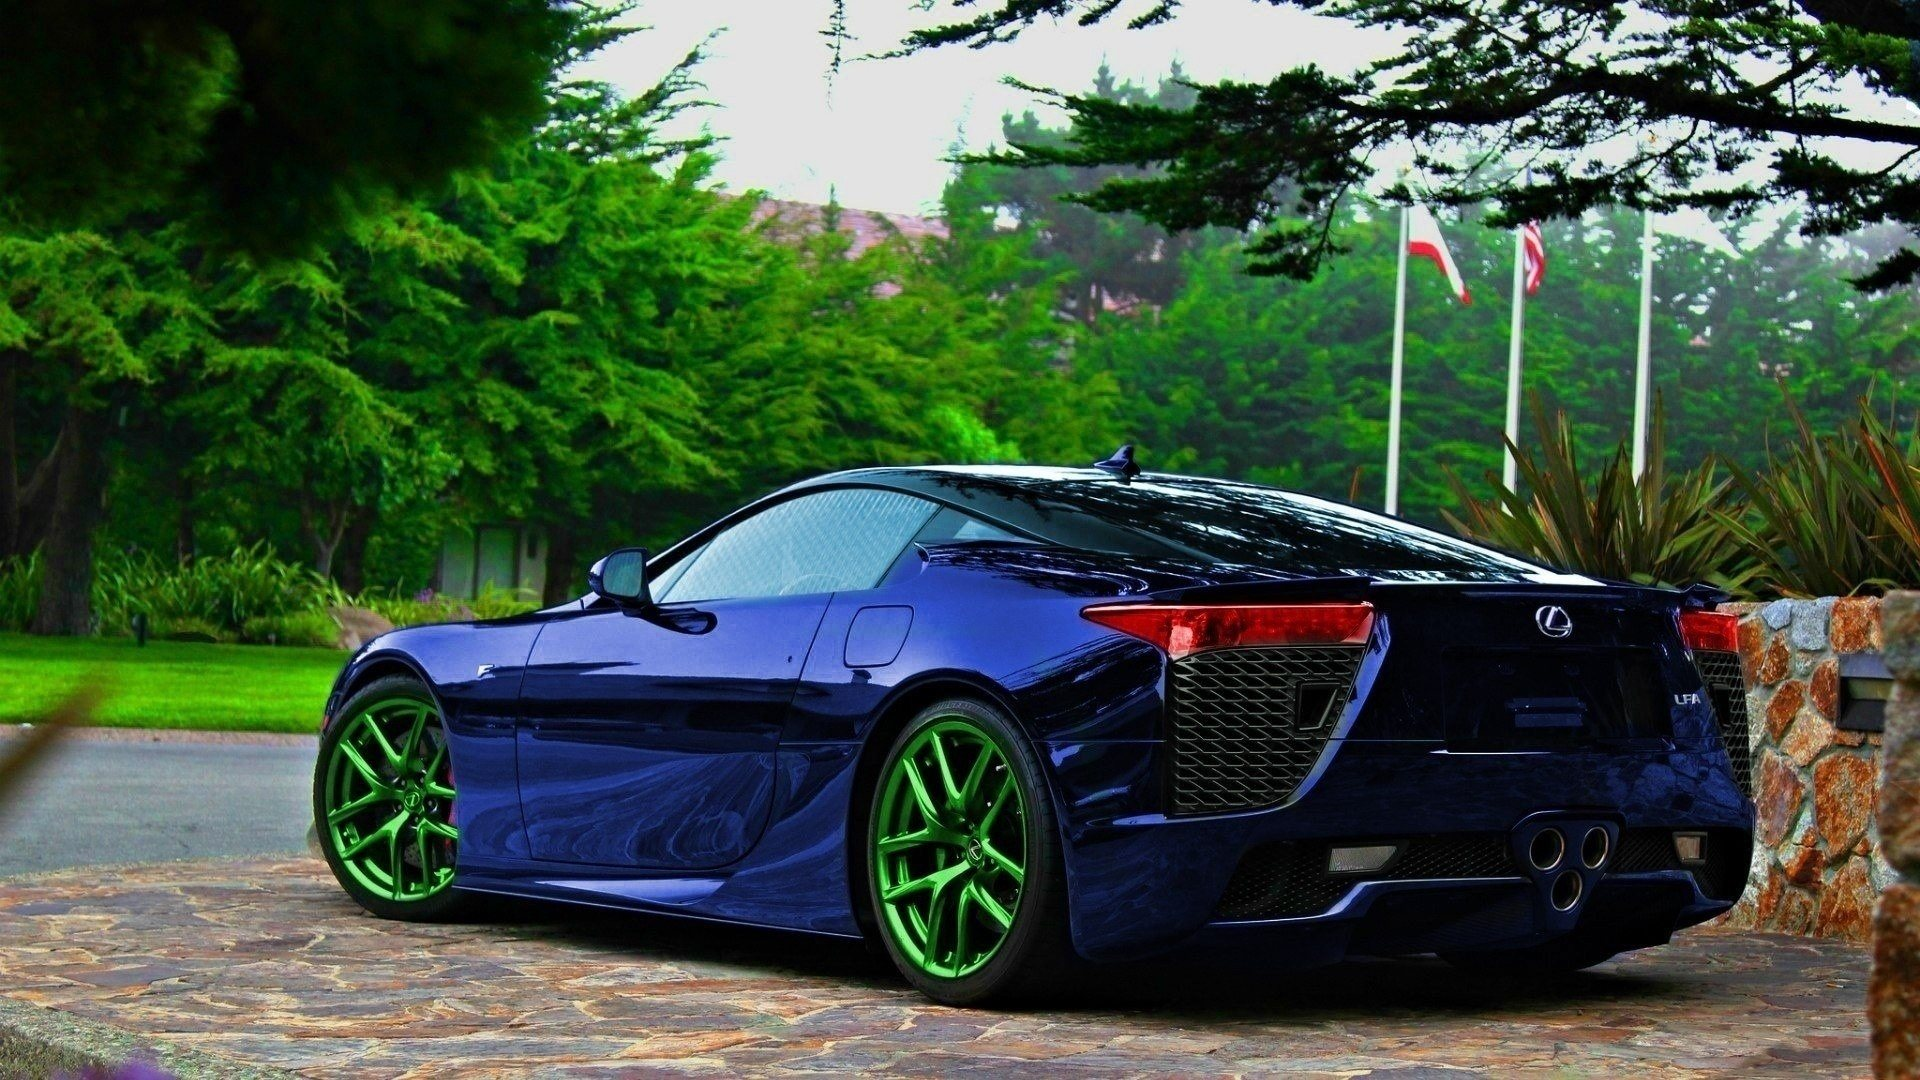 Lexus Lfa Hd Pic Wallpaper